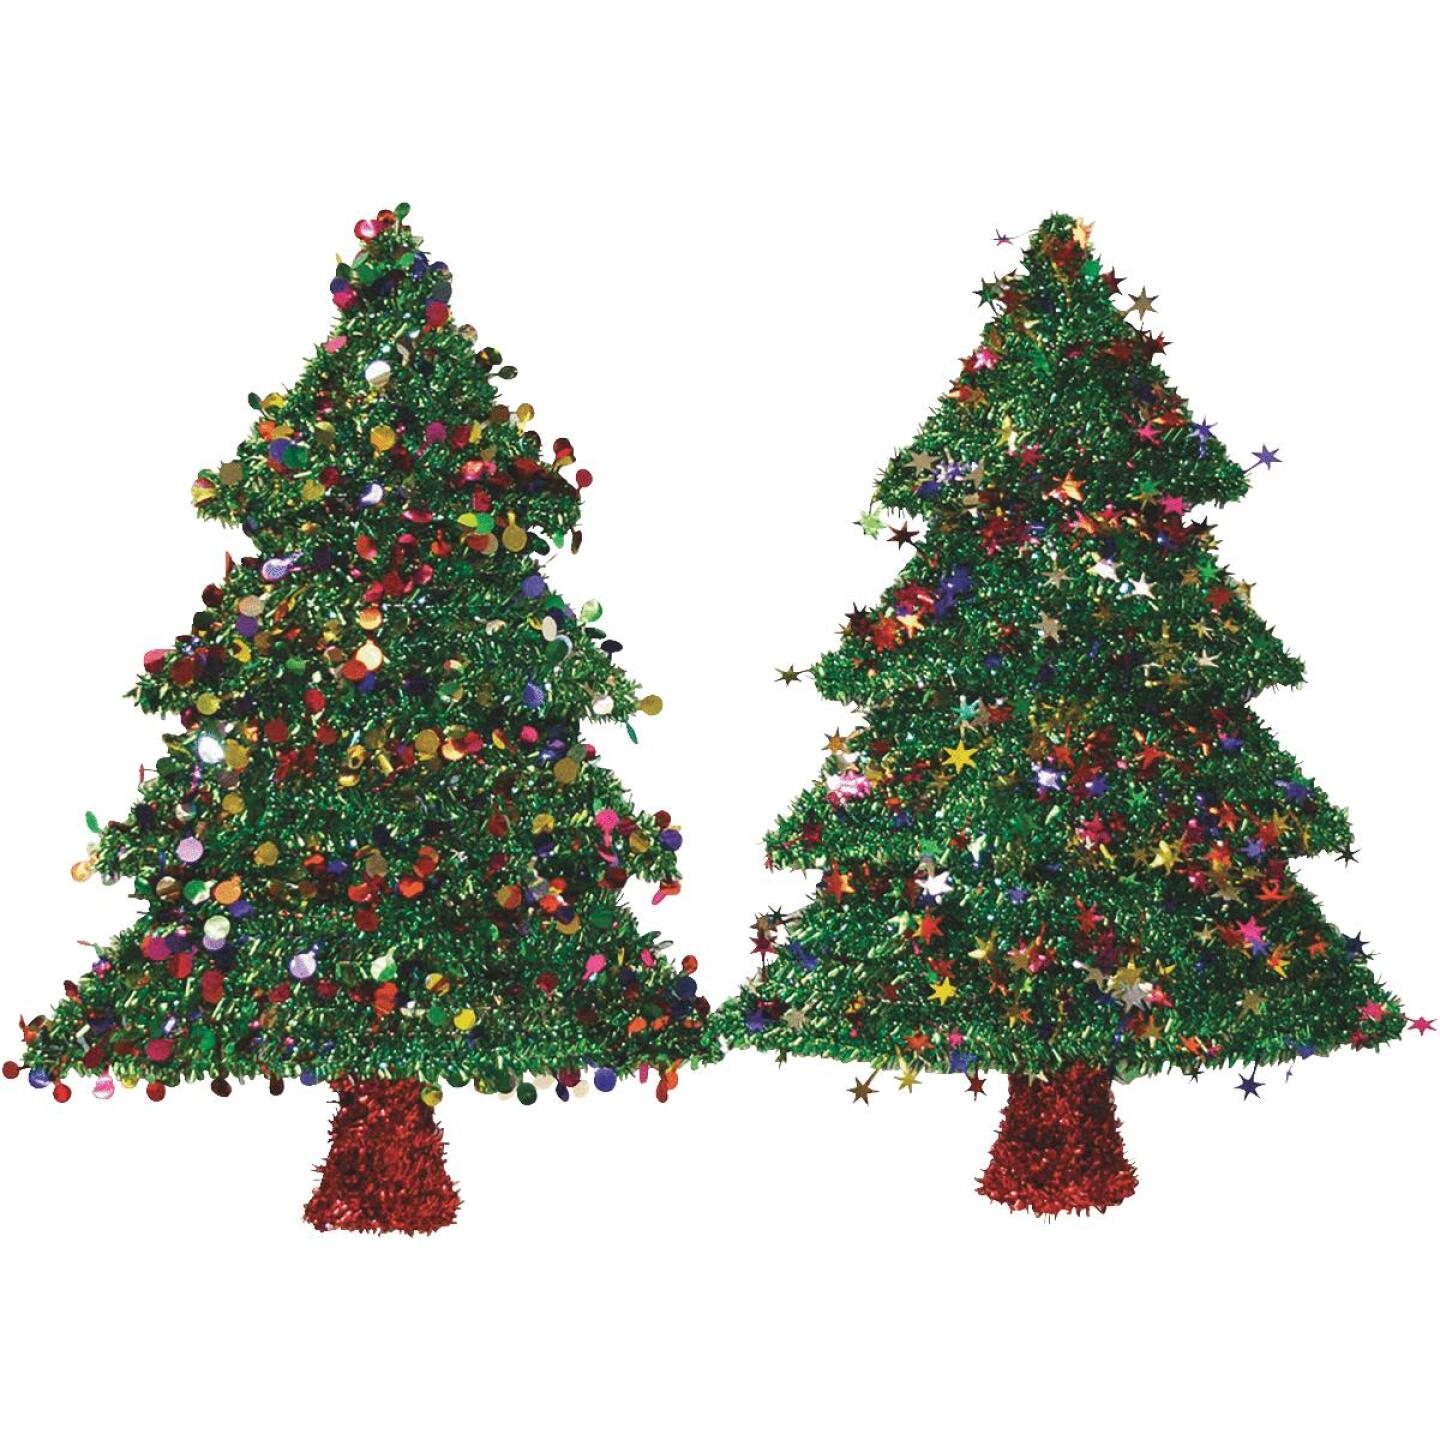 F C Young 18 In. Tinsel Christmas Tree Holiday Decoration Image 1